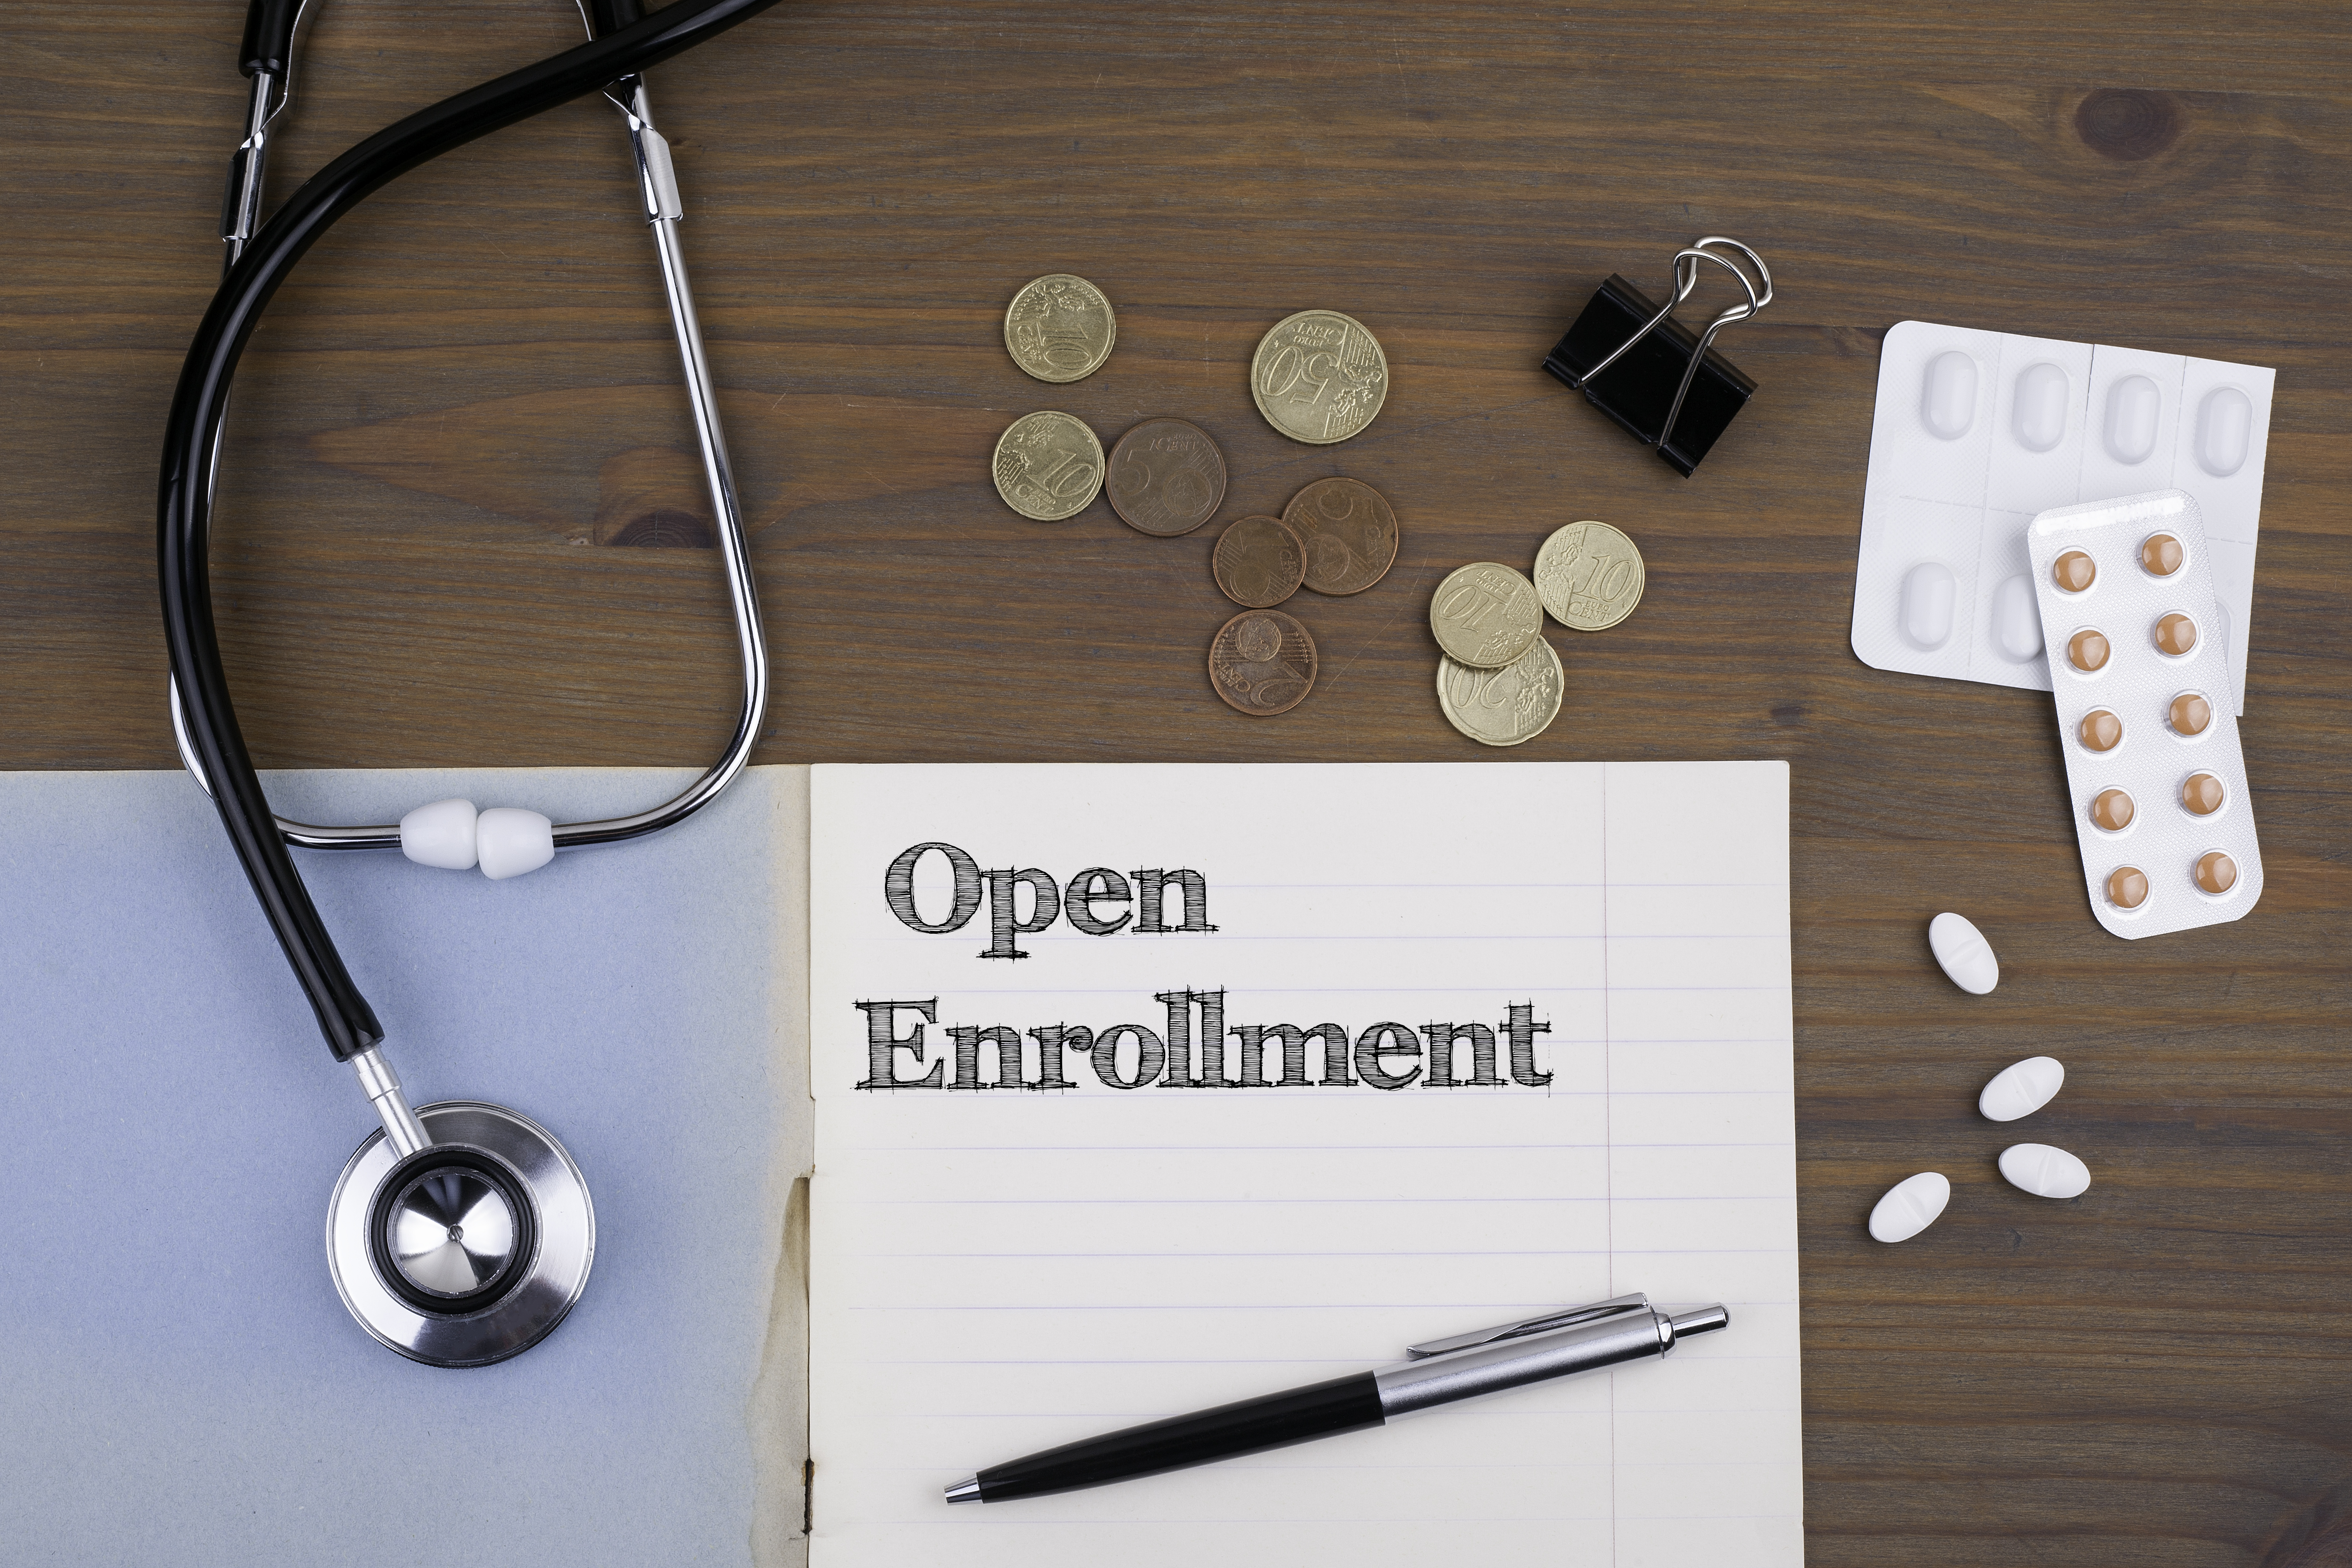 Partner with a Broker to Make 2020 Your Best Open Enrollment Yet